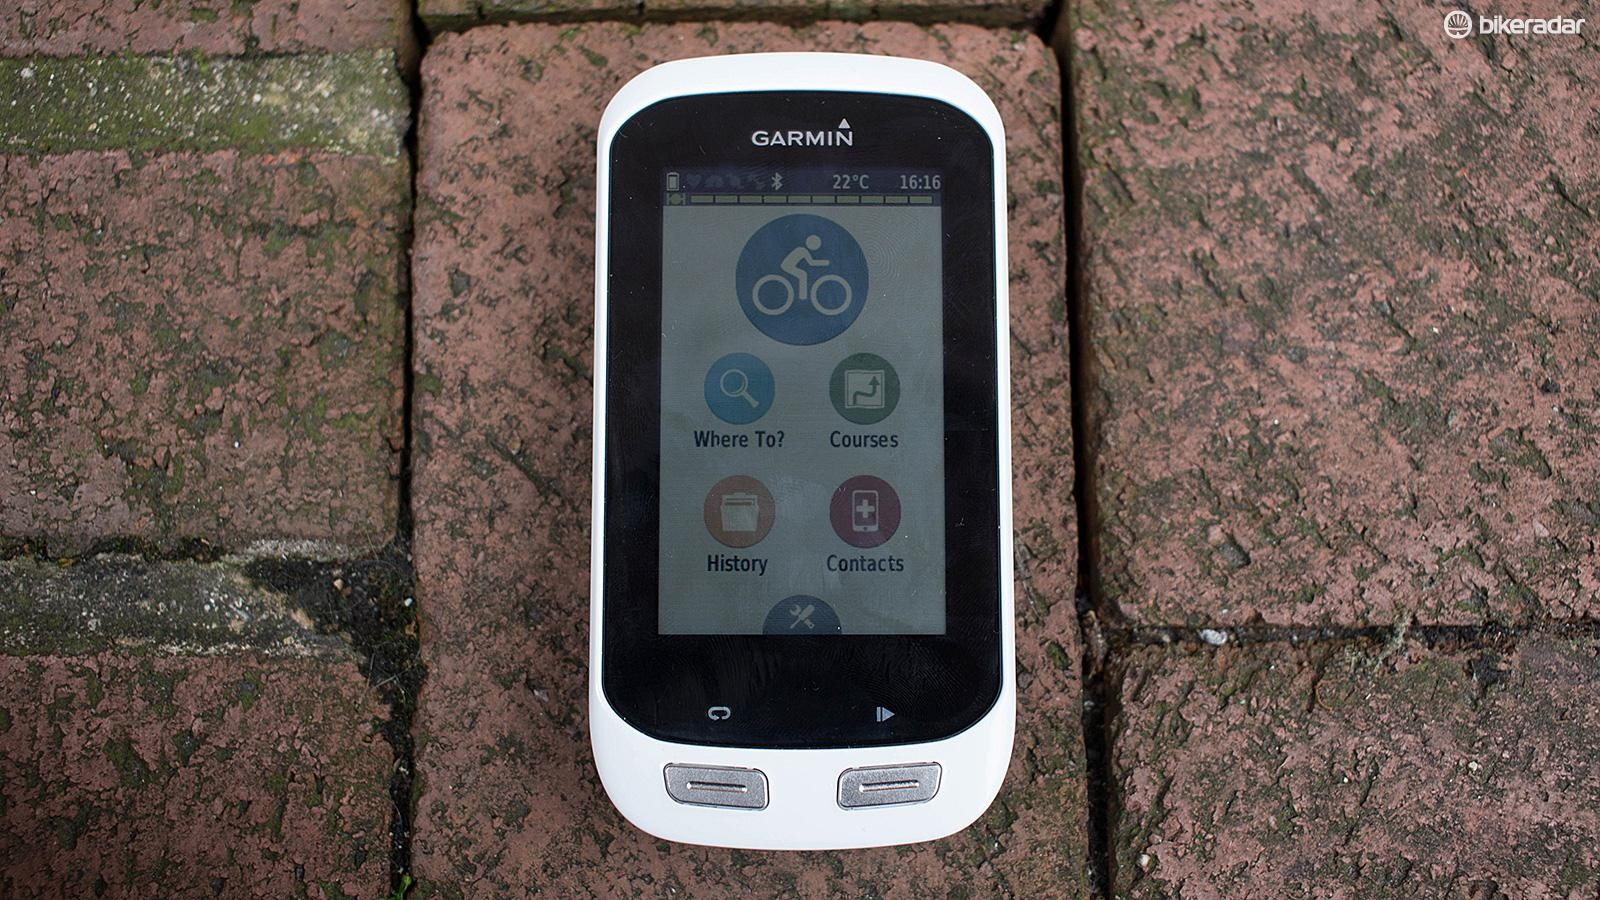 The Garmin Edge Explore 1000 is ideal if, like me, you could get lost in an igloo